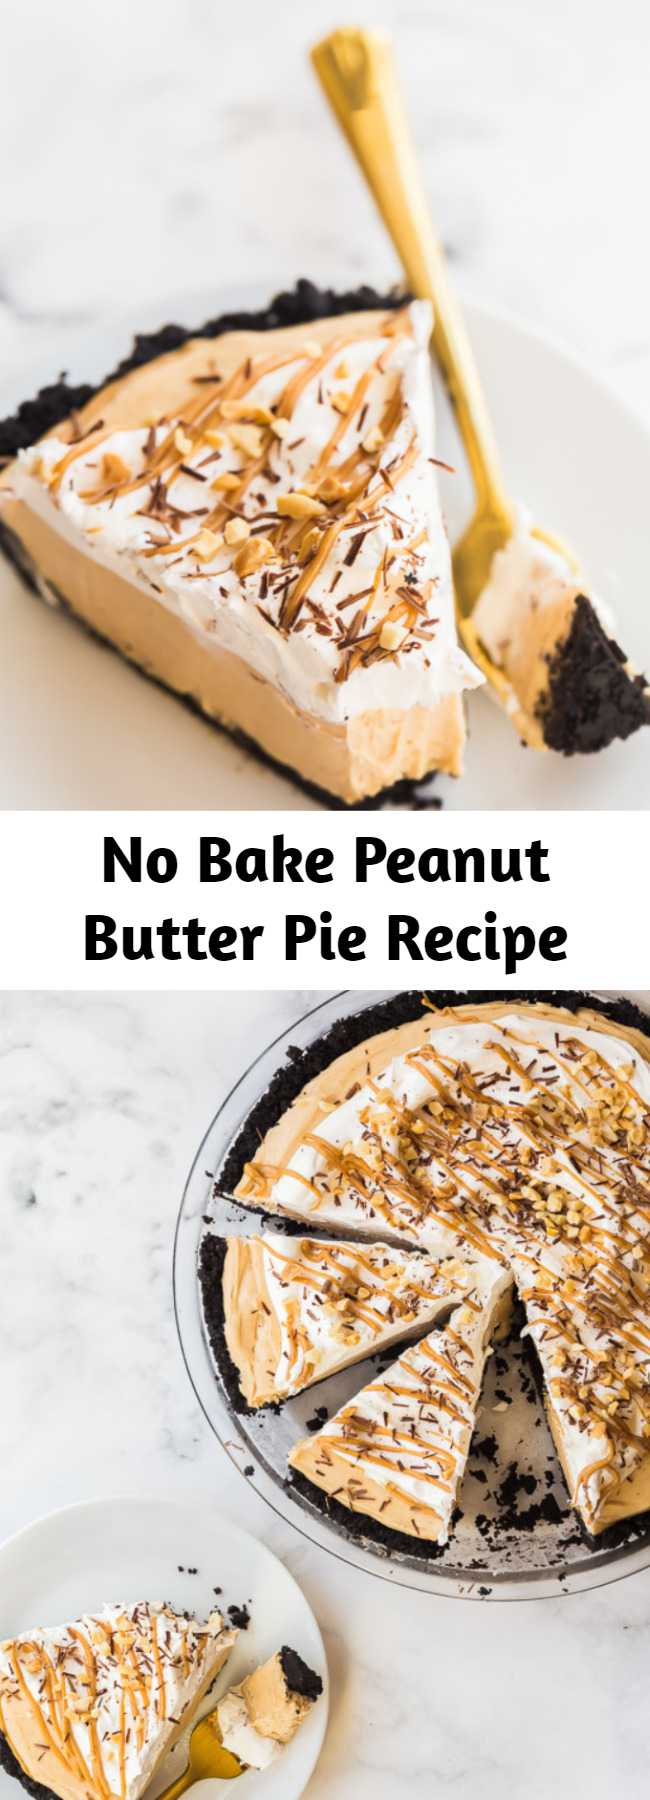 No Bake Peanut Butter Pie Recipe - This Peanut Butter Pie is completely no bake and made with a chocolate Oreo crust, peanut butter cream cheese filling, and topped with more chocolate! #peanutbutter #pie #nobake #dessert #recipes